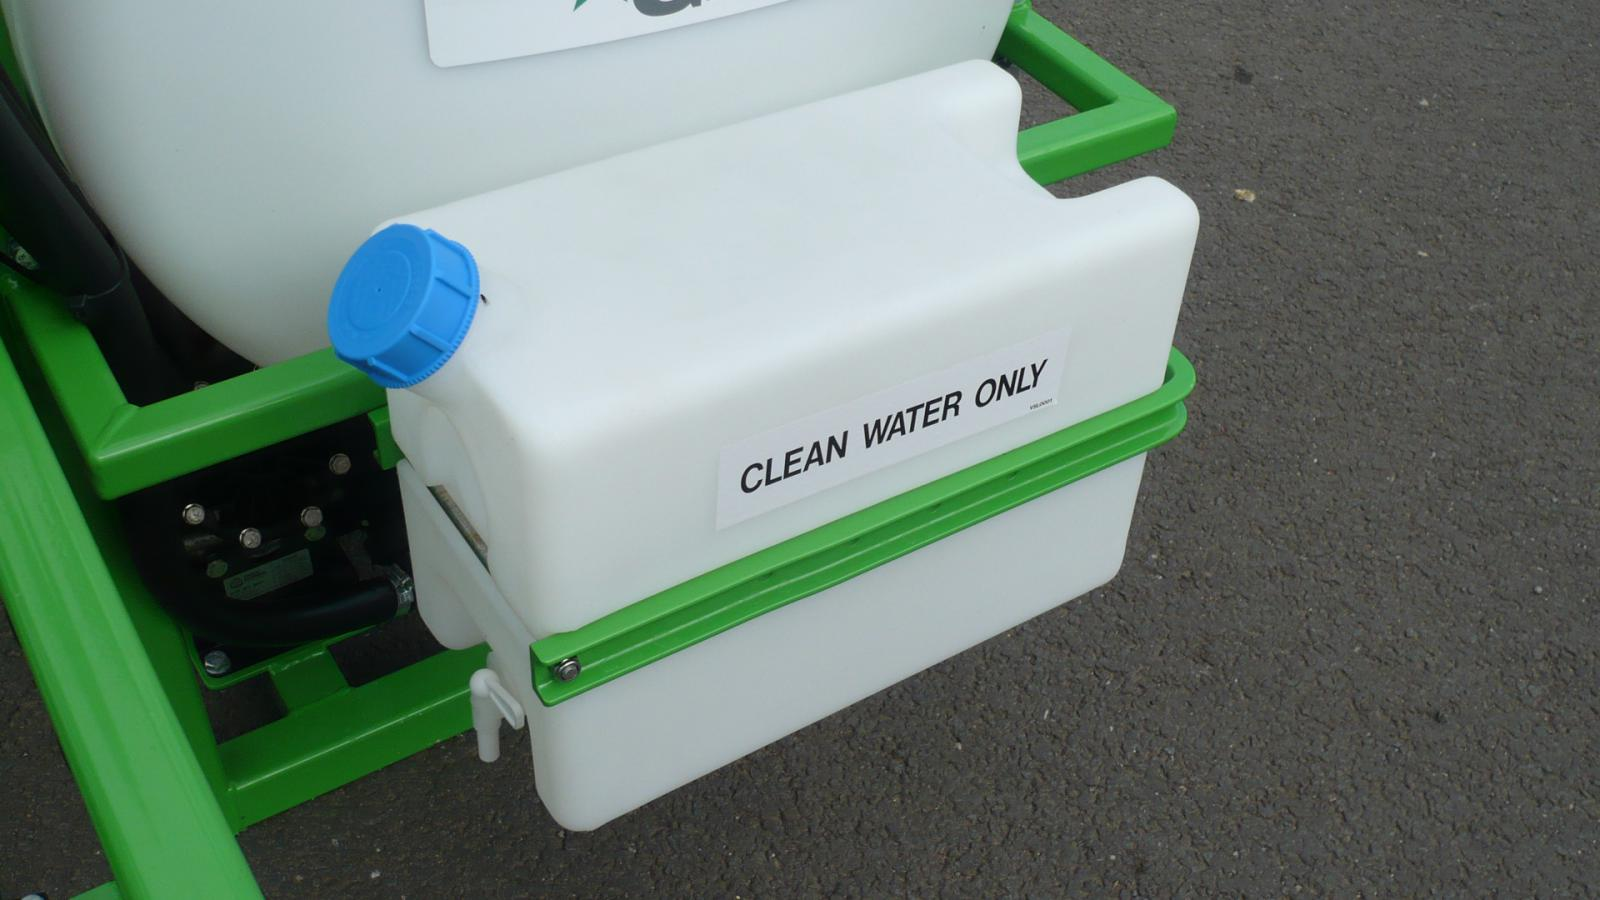 The AS200 STARGREEN Tractor Mounted Amenity Sprayer incorporates a clean water tank